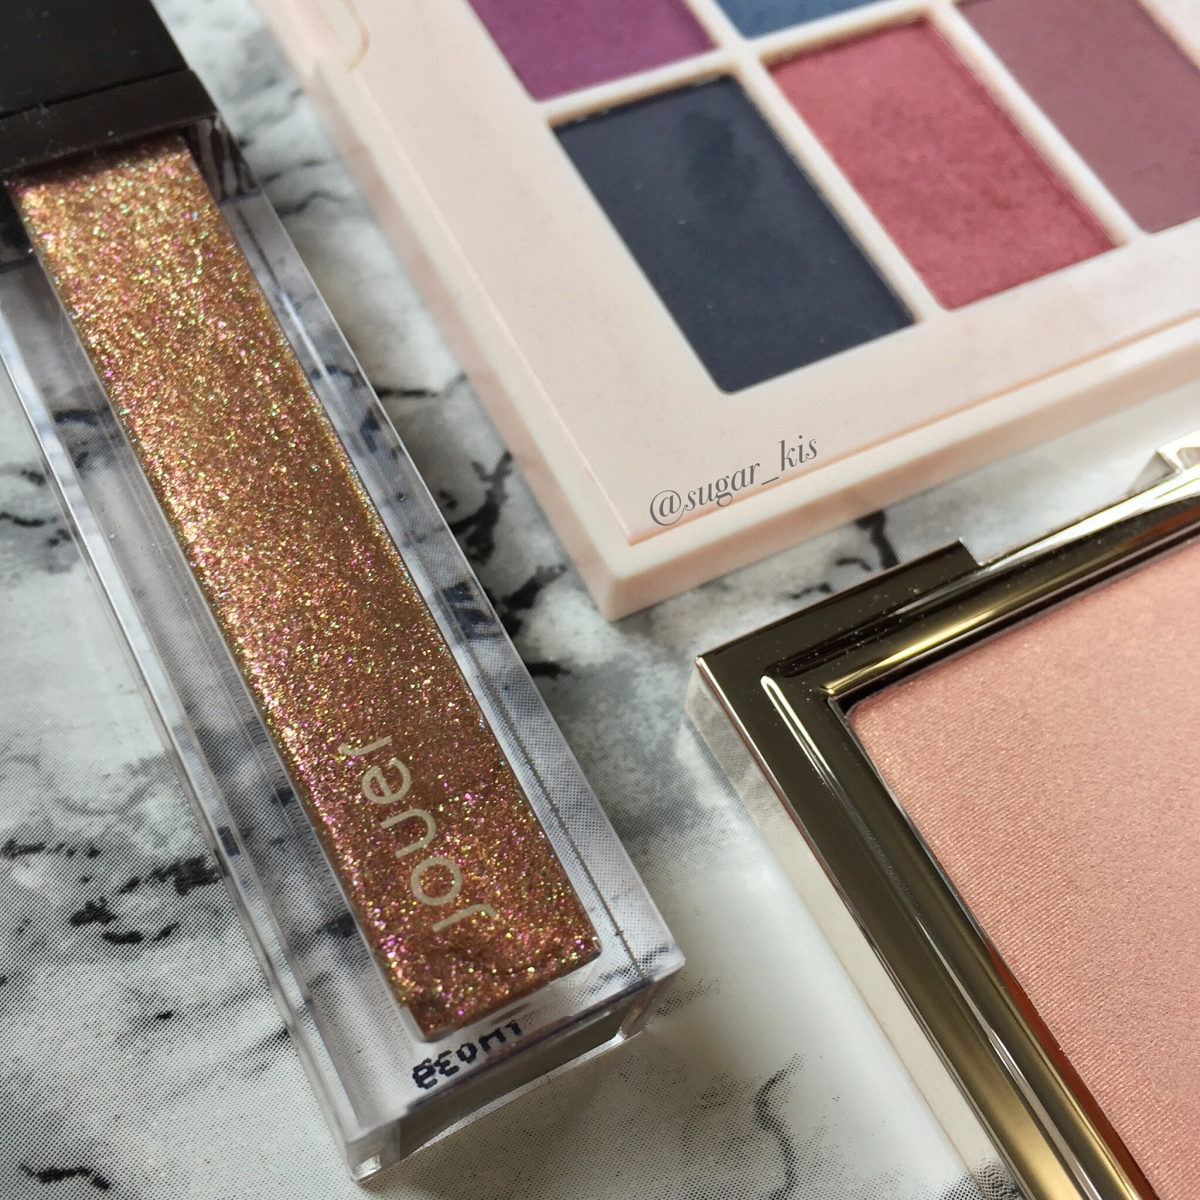 Jouer New Springtime In Paris: Review and Swatches.